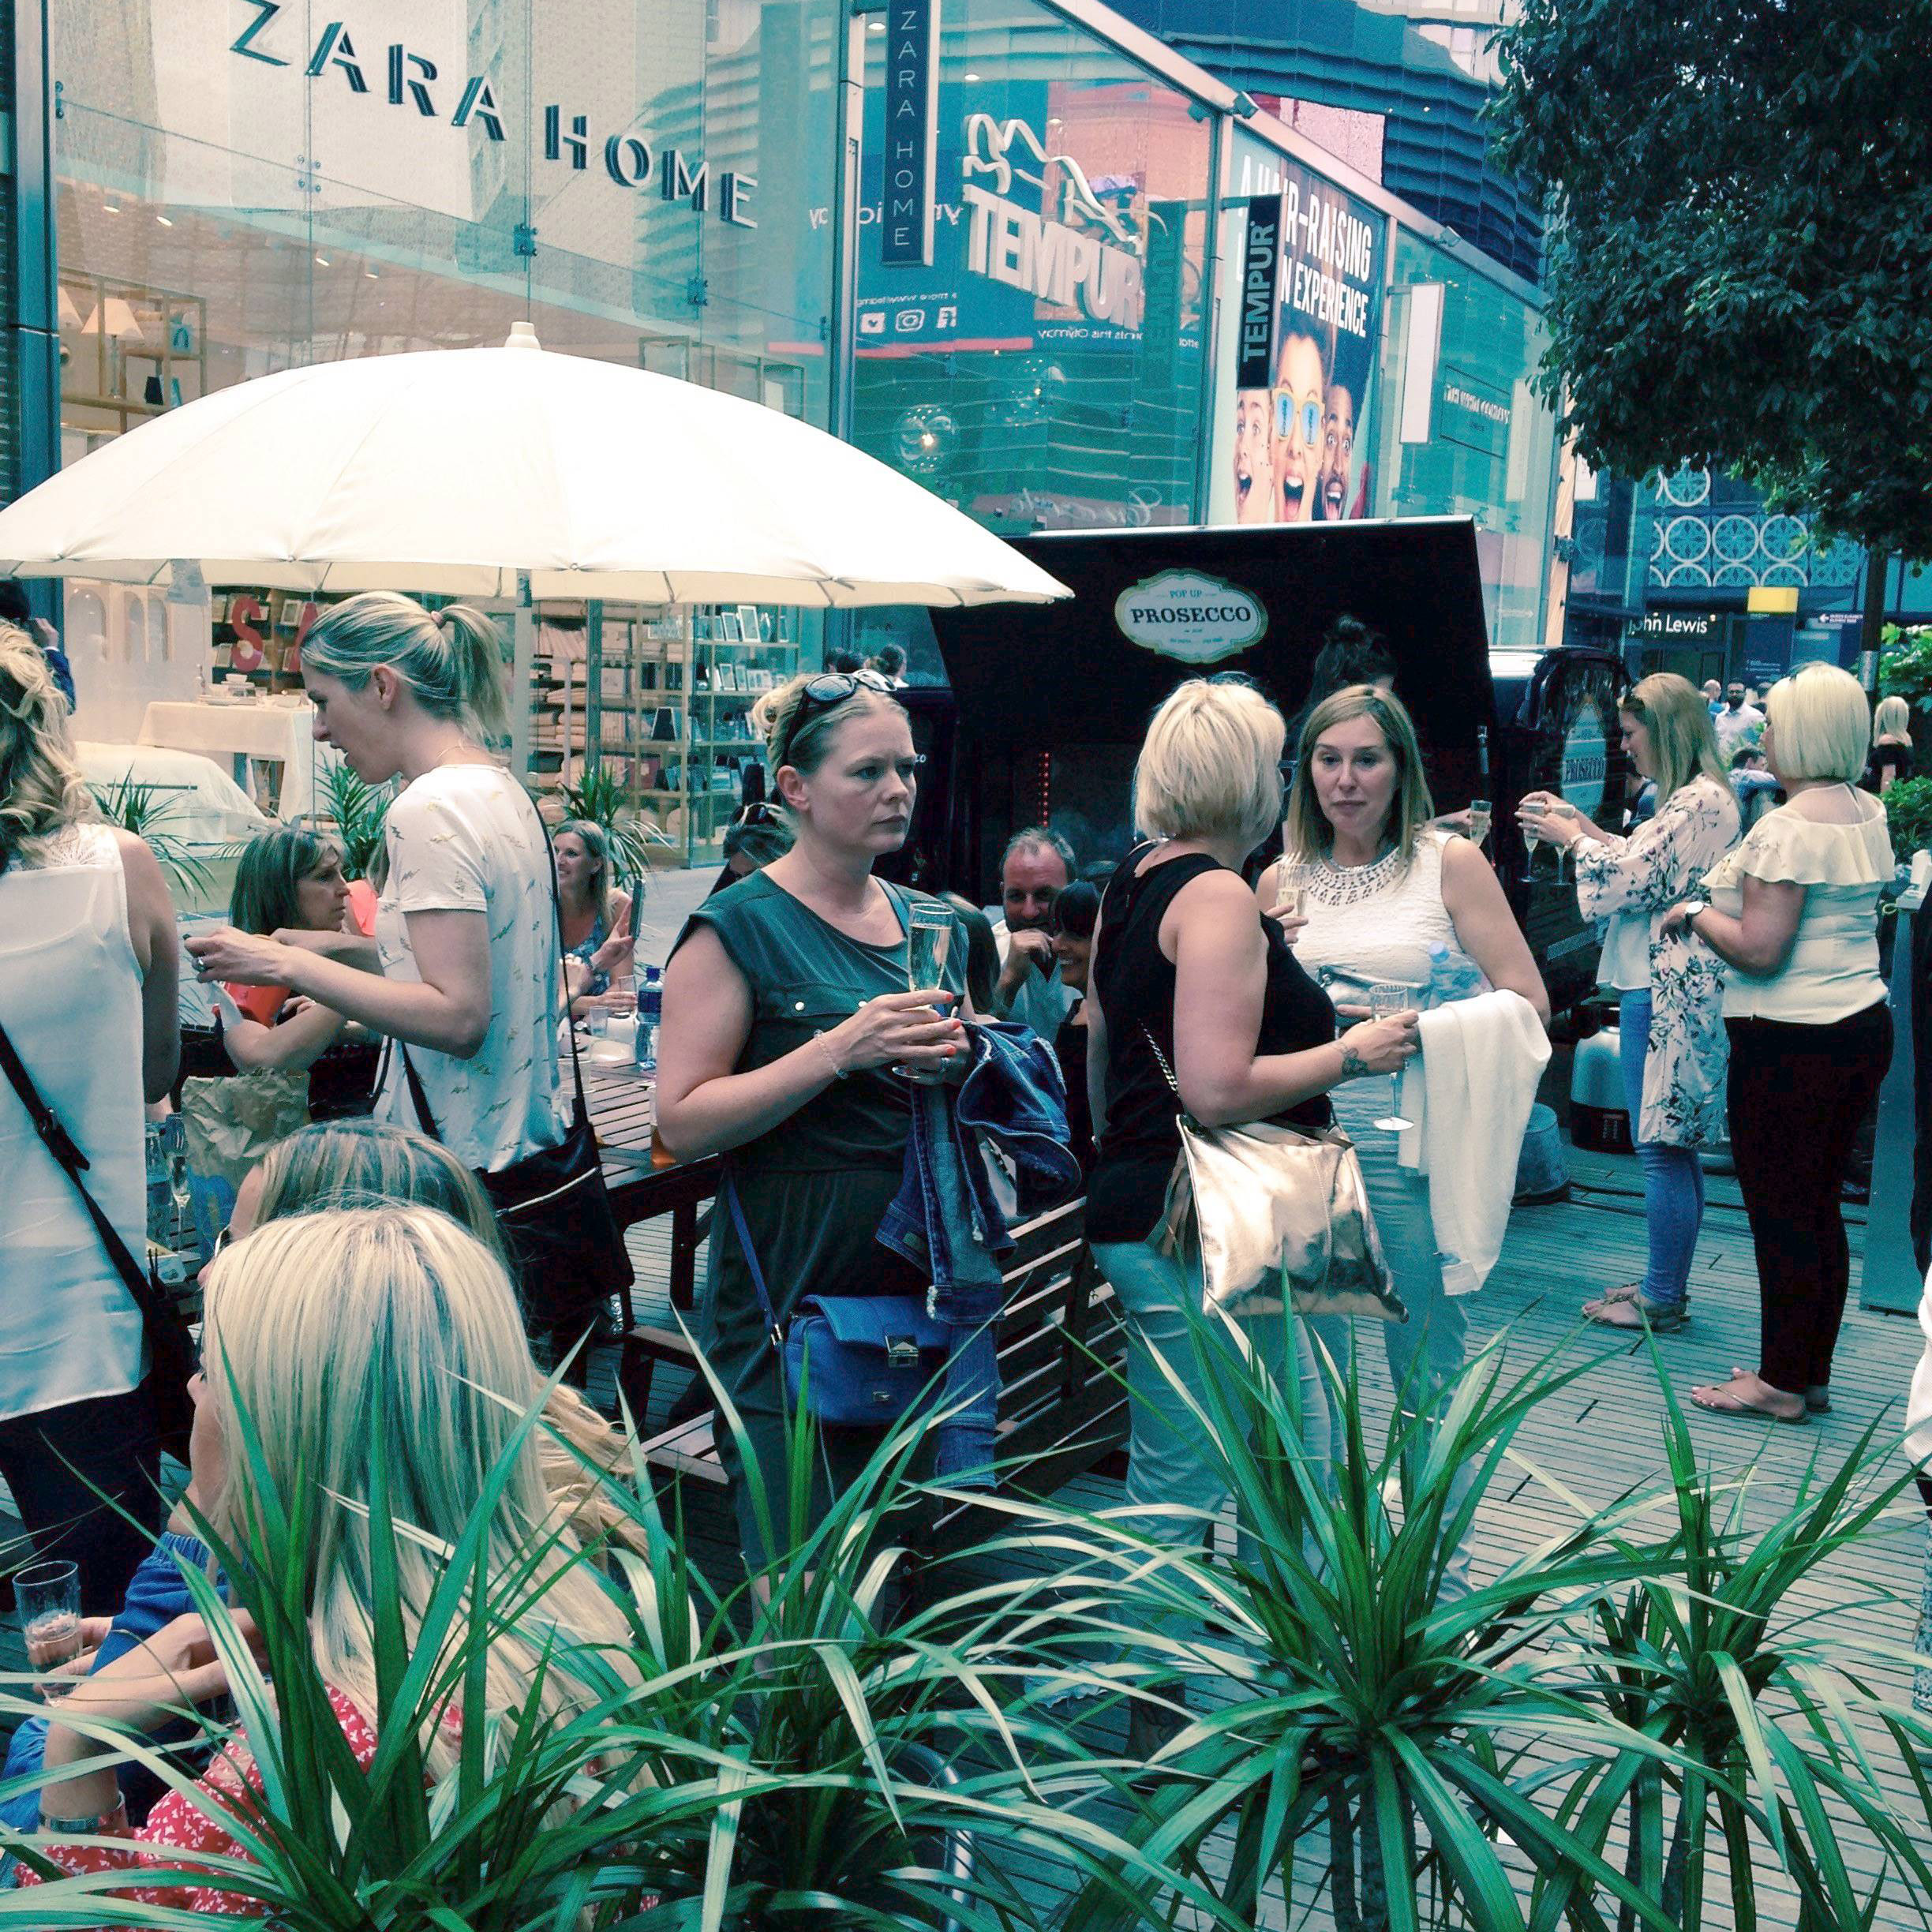 PopUp Prosecco - We entertained you